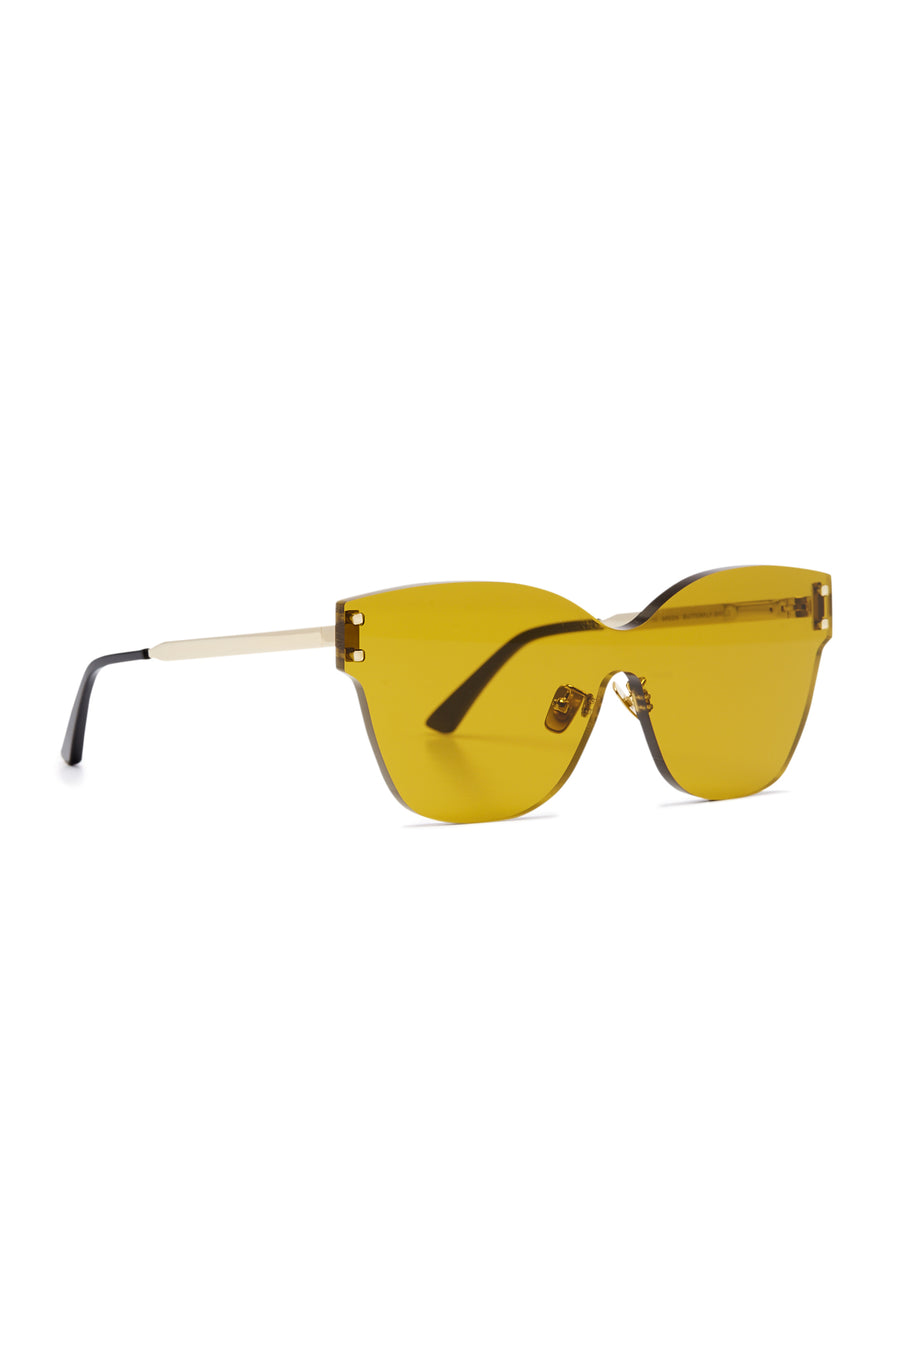 S T BUTTERFLY SHIELD SUNGLASSES BREEN